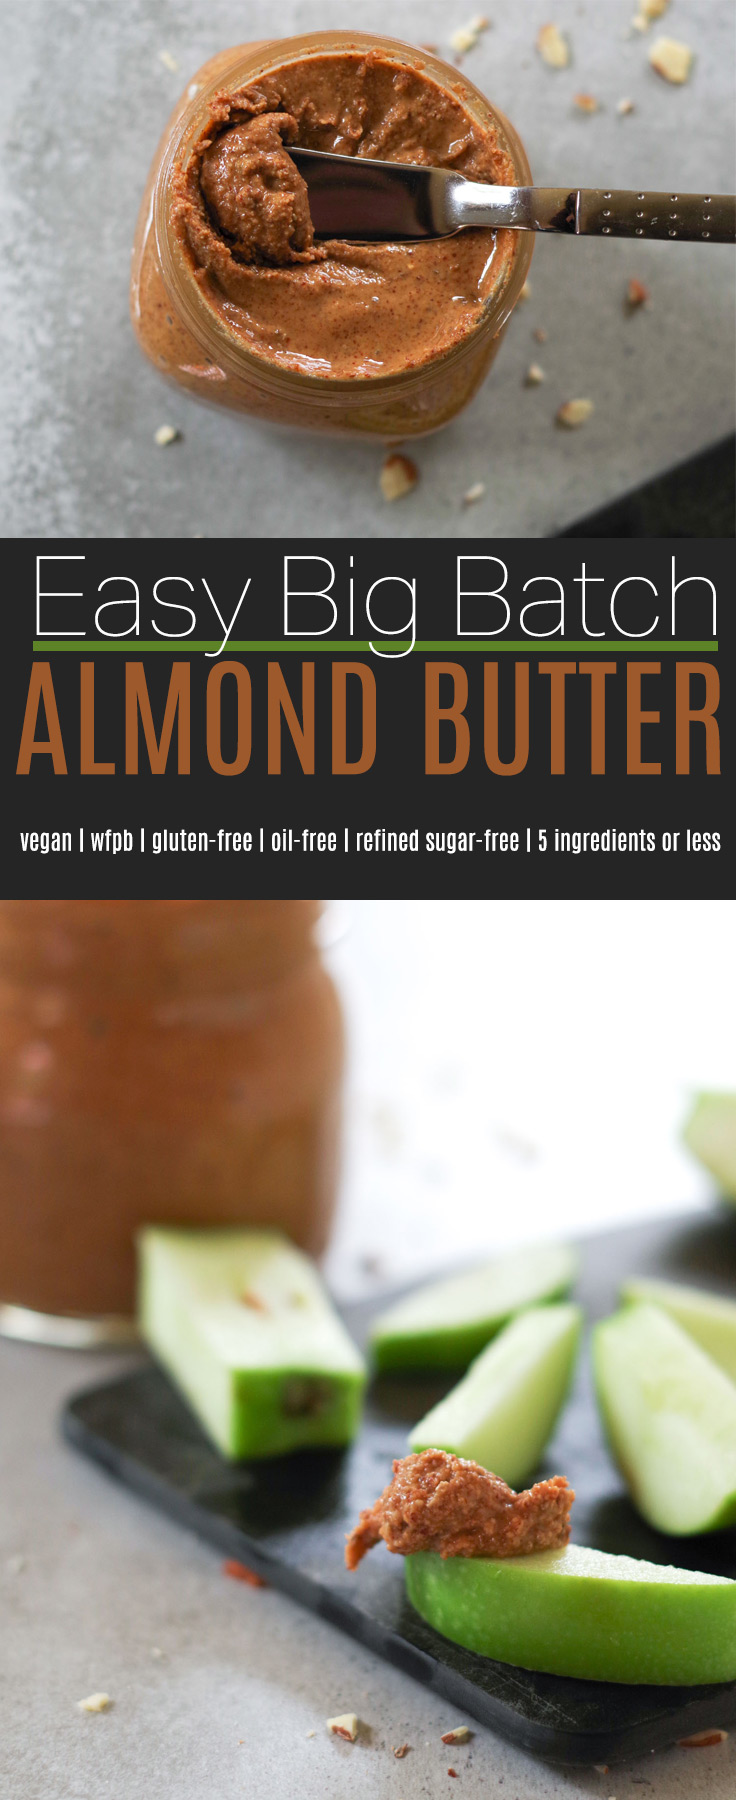 Easy Big Batch Almond Butter, by Beautiful Ingredient